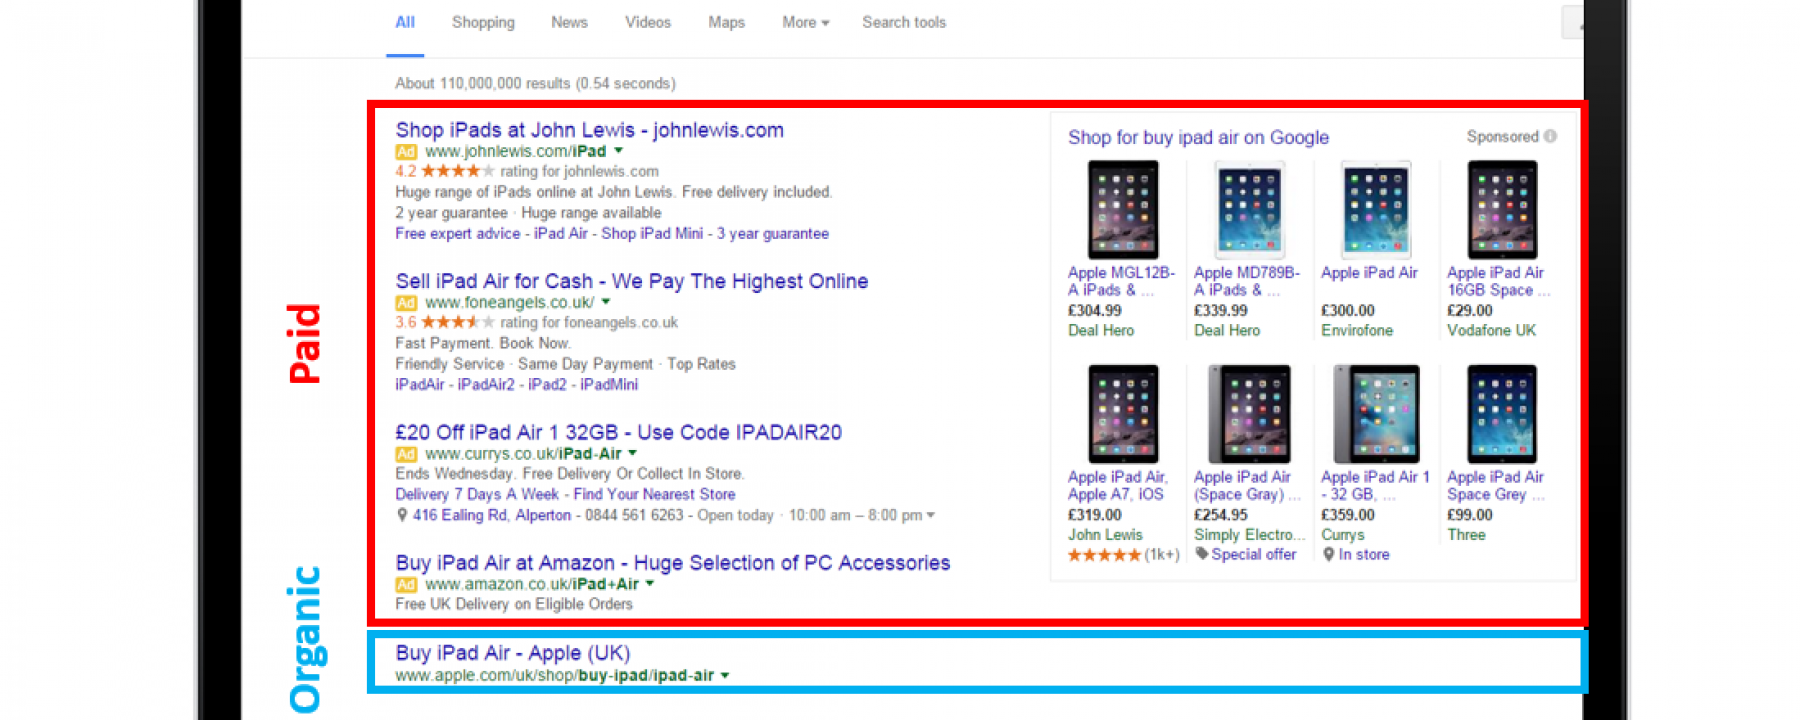 PPC hubbub - Google SERP - Product Listing Ads